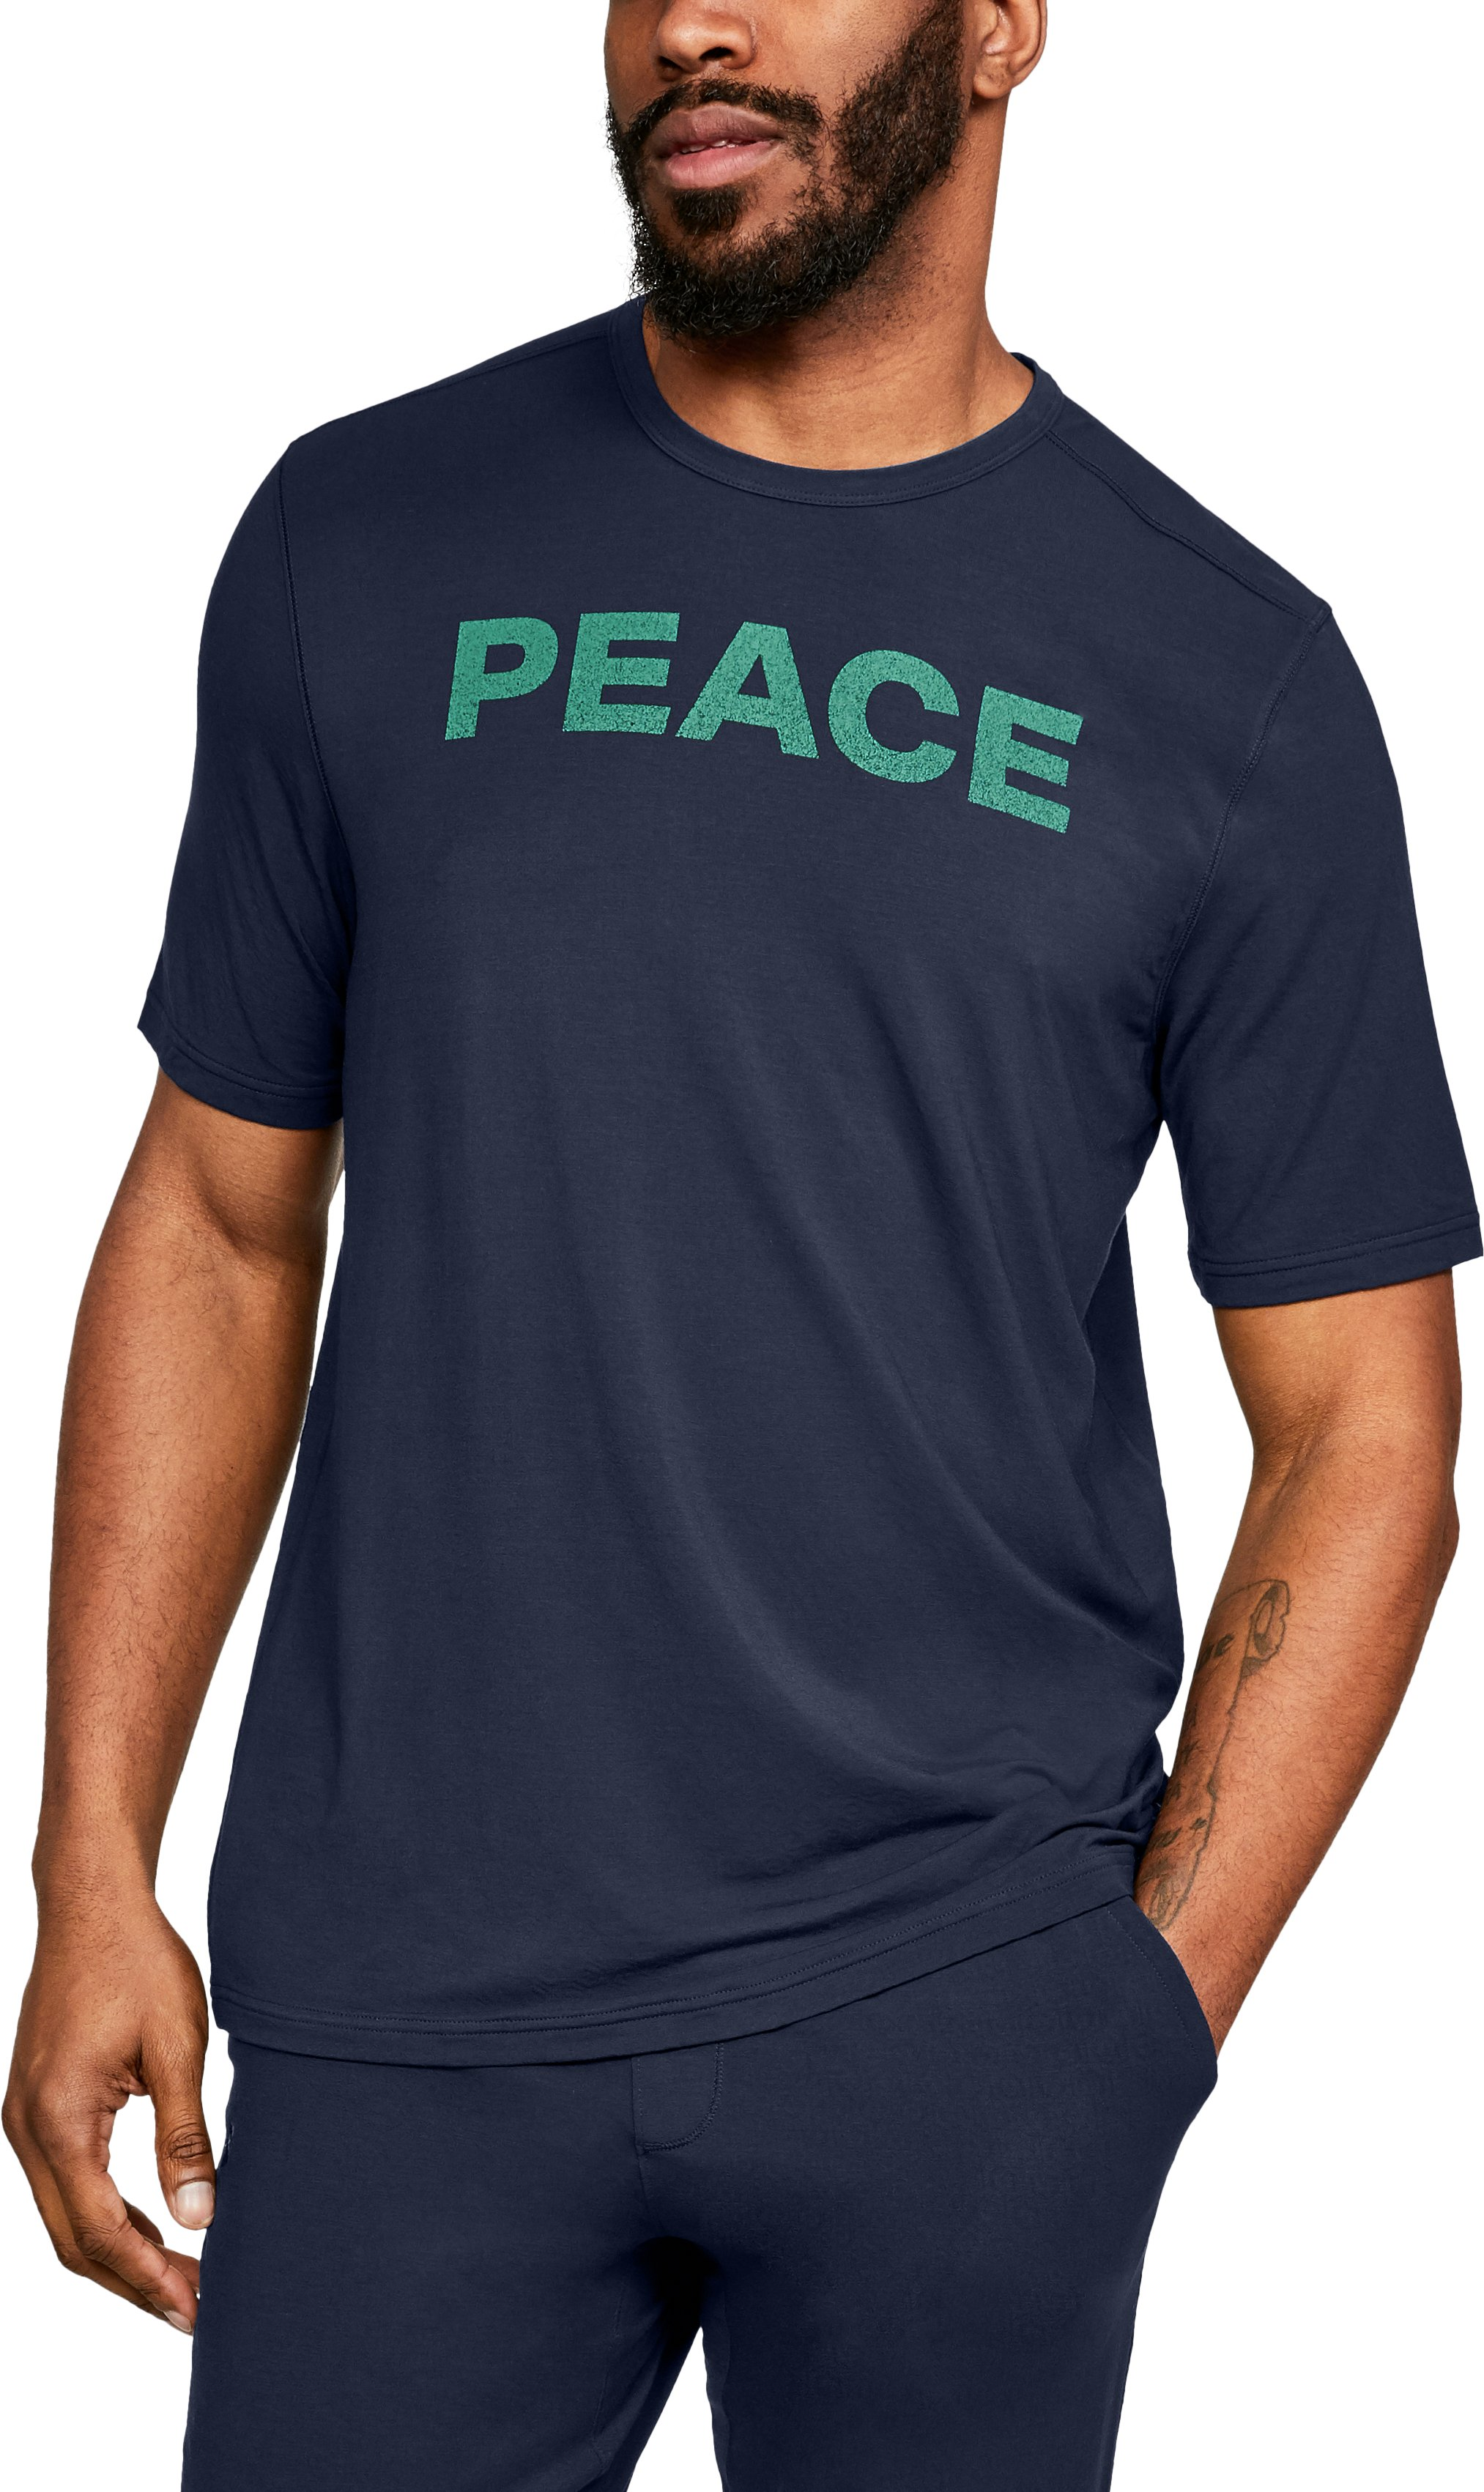 Men's Athlete Recovery Ultra Comfort Sleepwear PEACE Graphic T-Shirt, Midnight Navy,